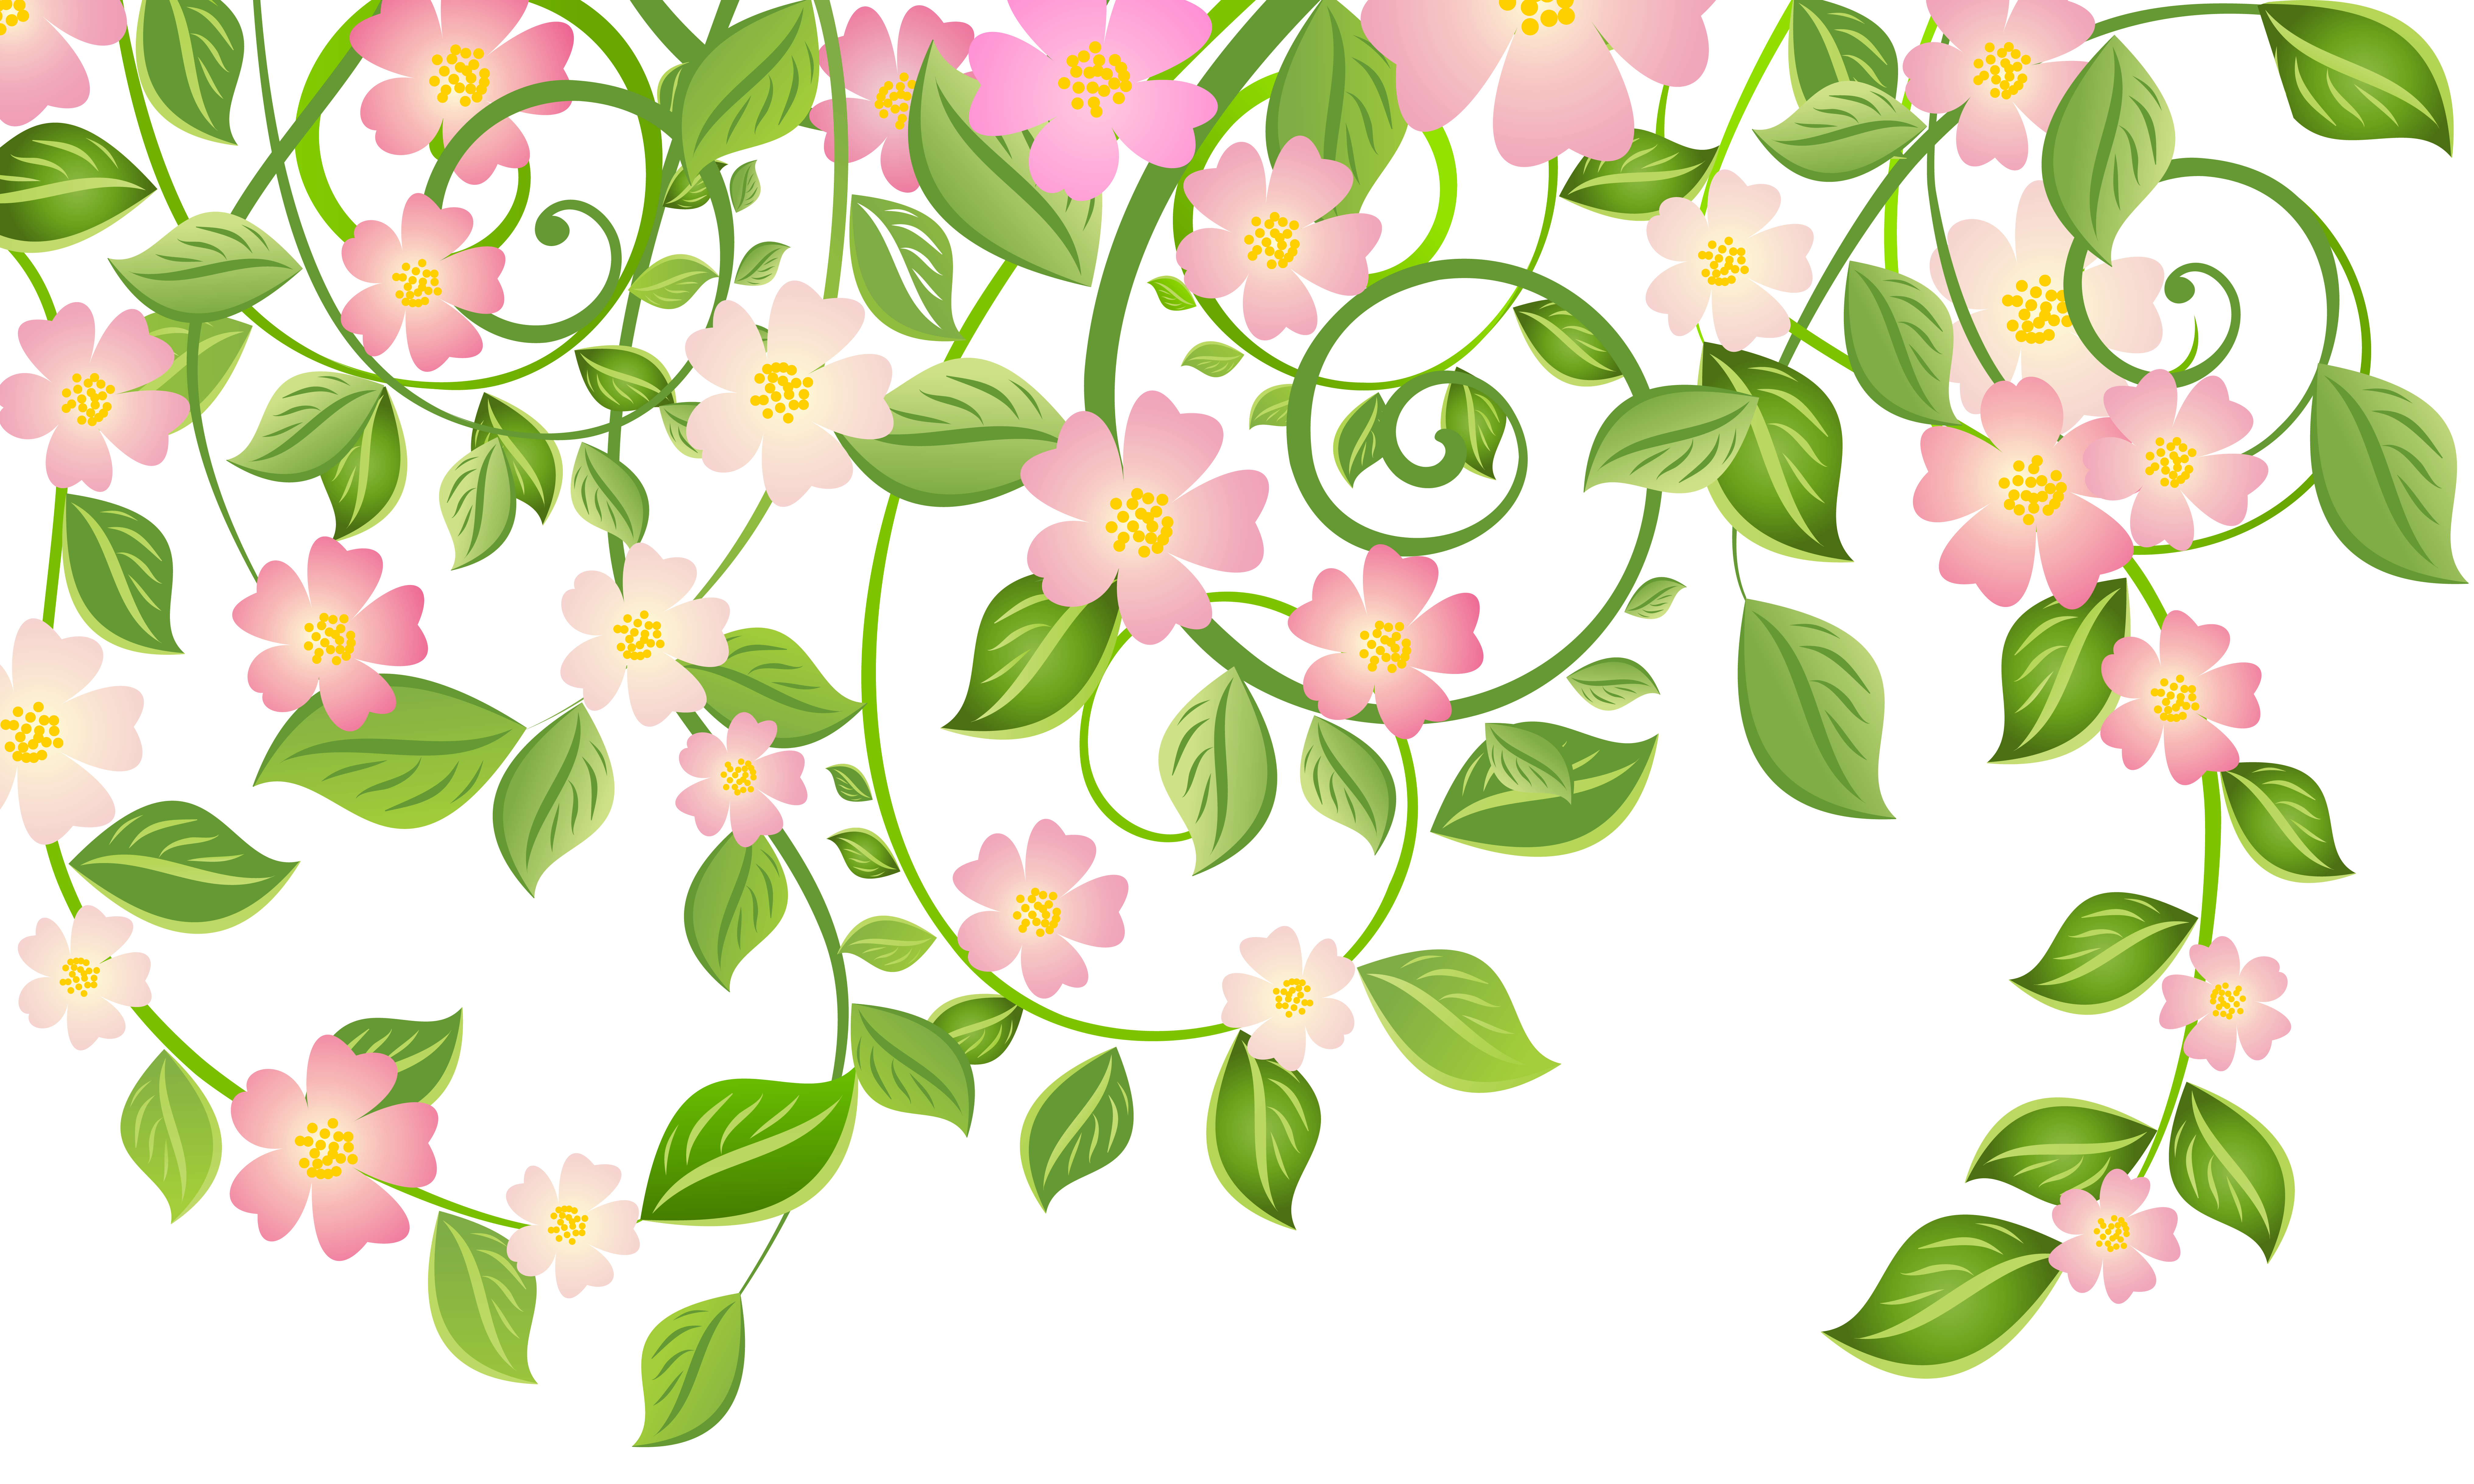 Spring Blossom Decoration with Leaves Transparent PNG Clip Art Image.